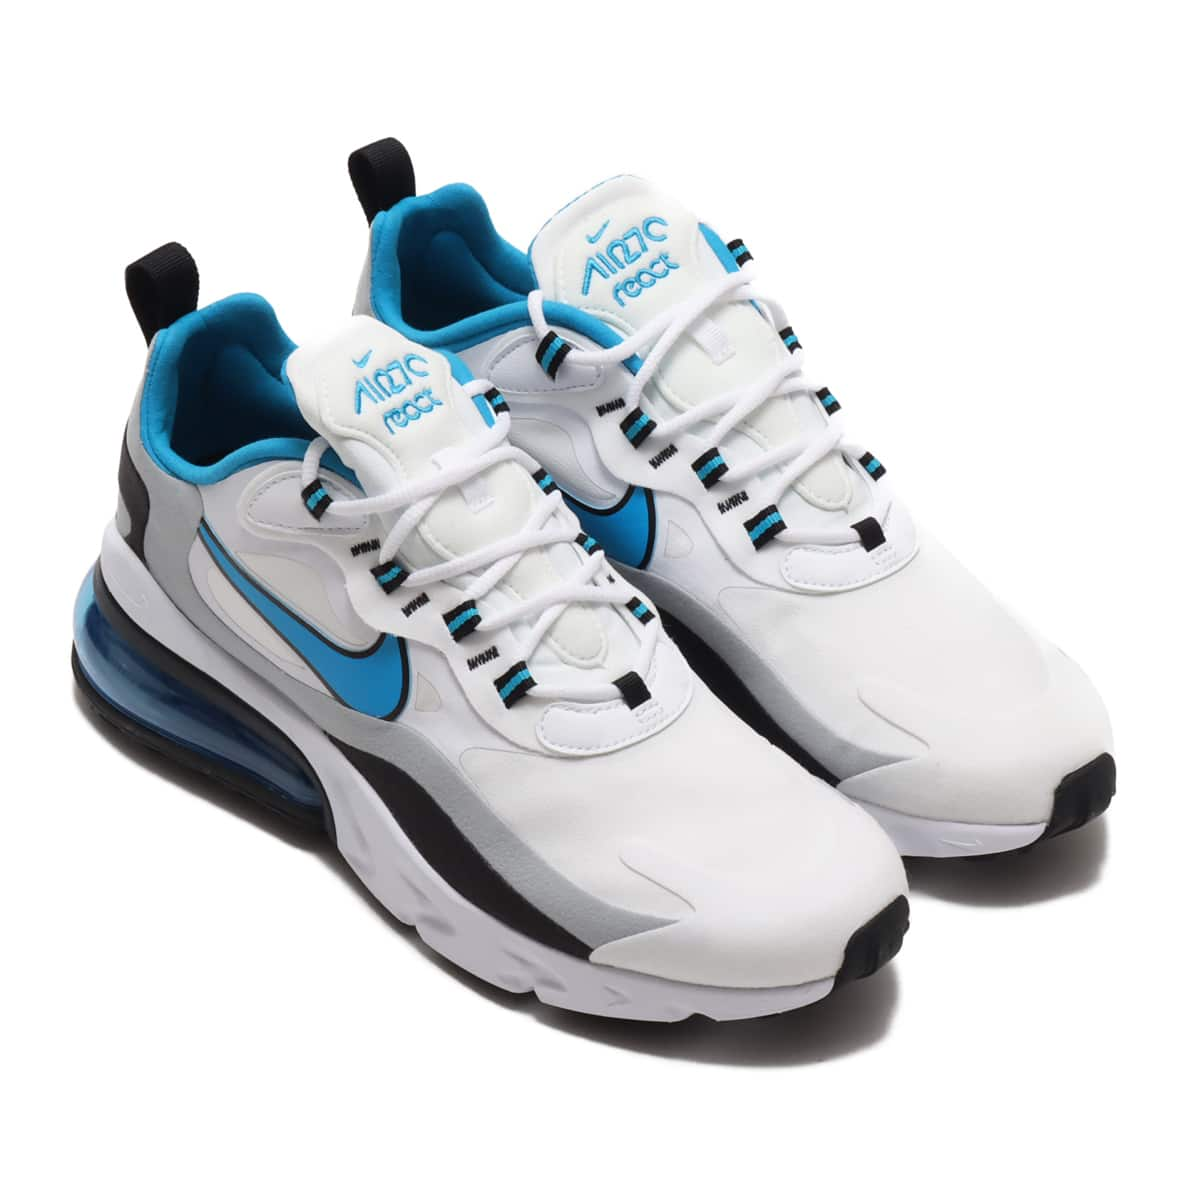 NIKE AIR MAX 270 REACT WHITE/LASER BLUE-WOLF GREY-BLACK 20FA-I_photo_large